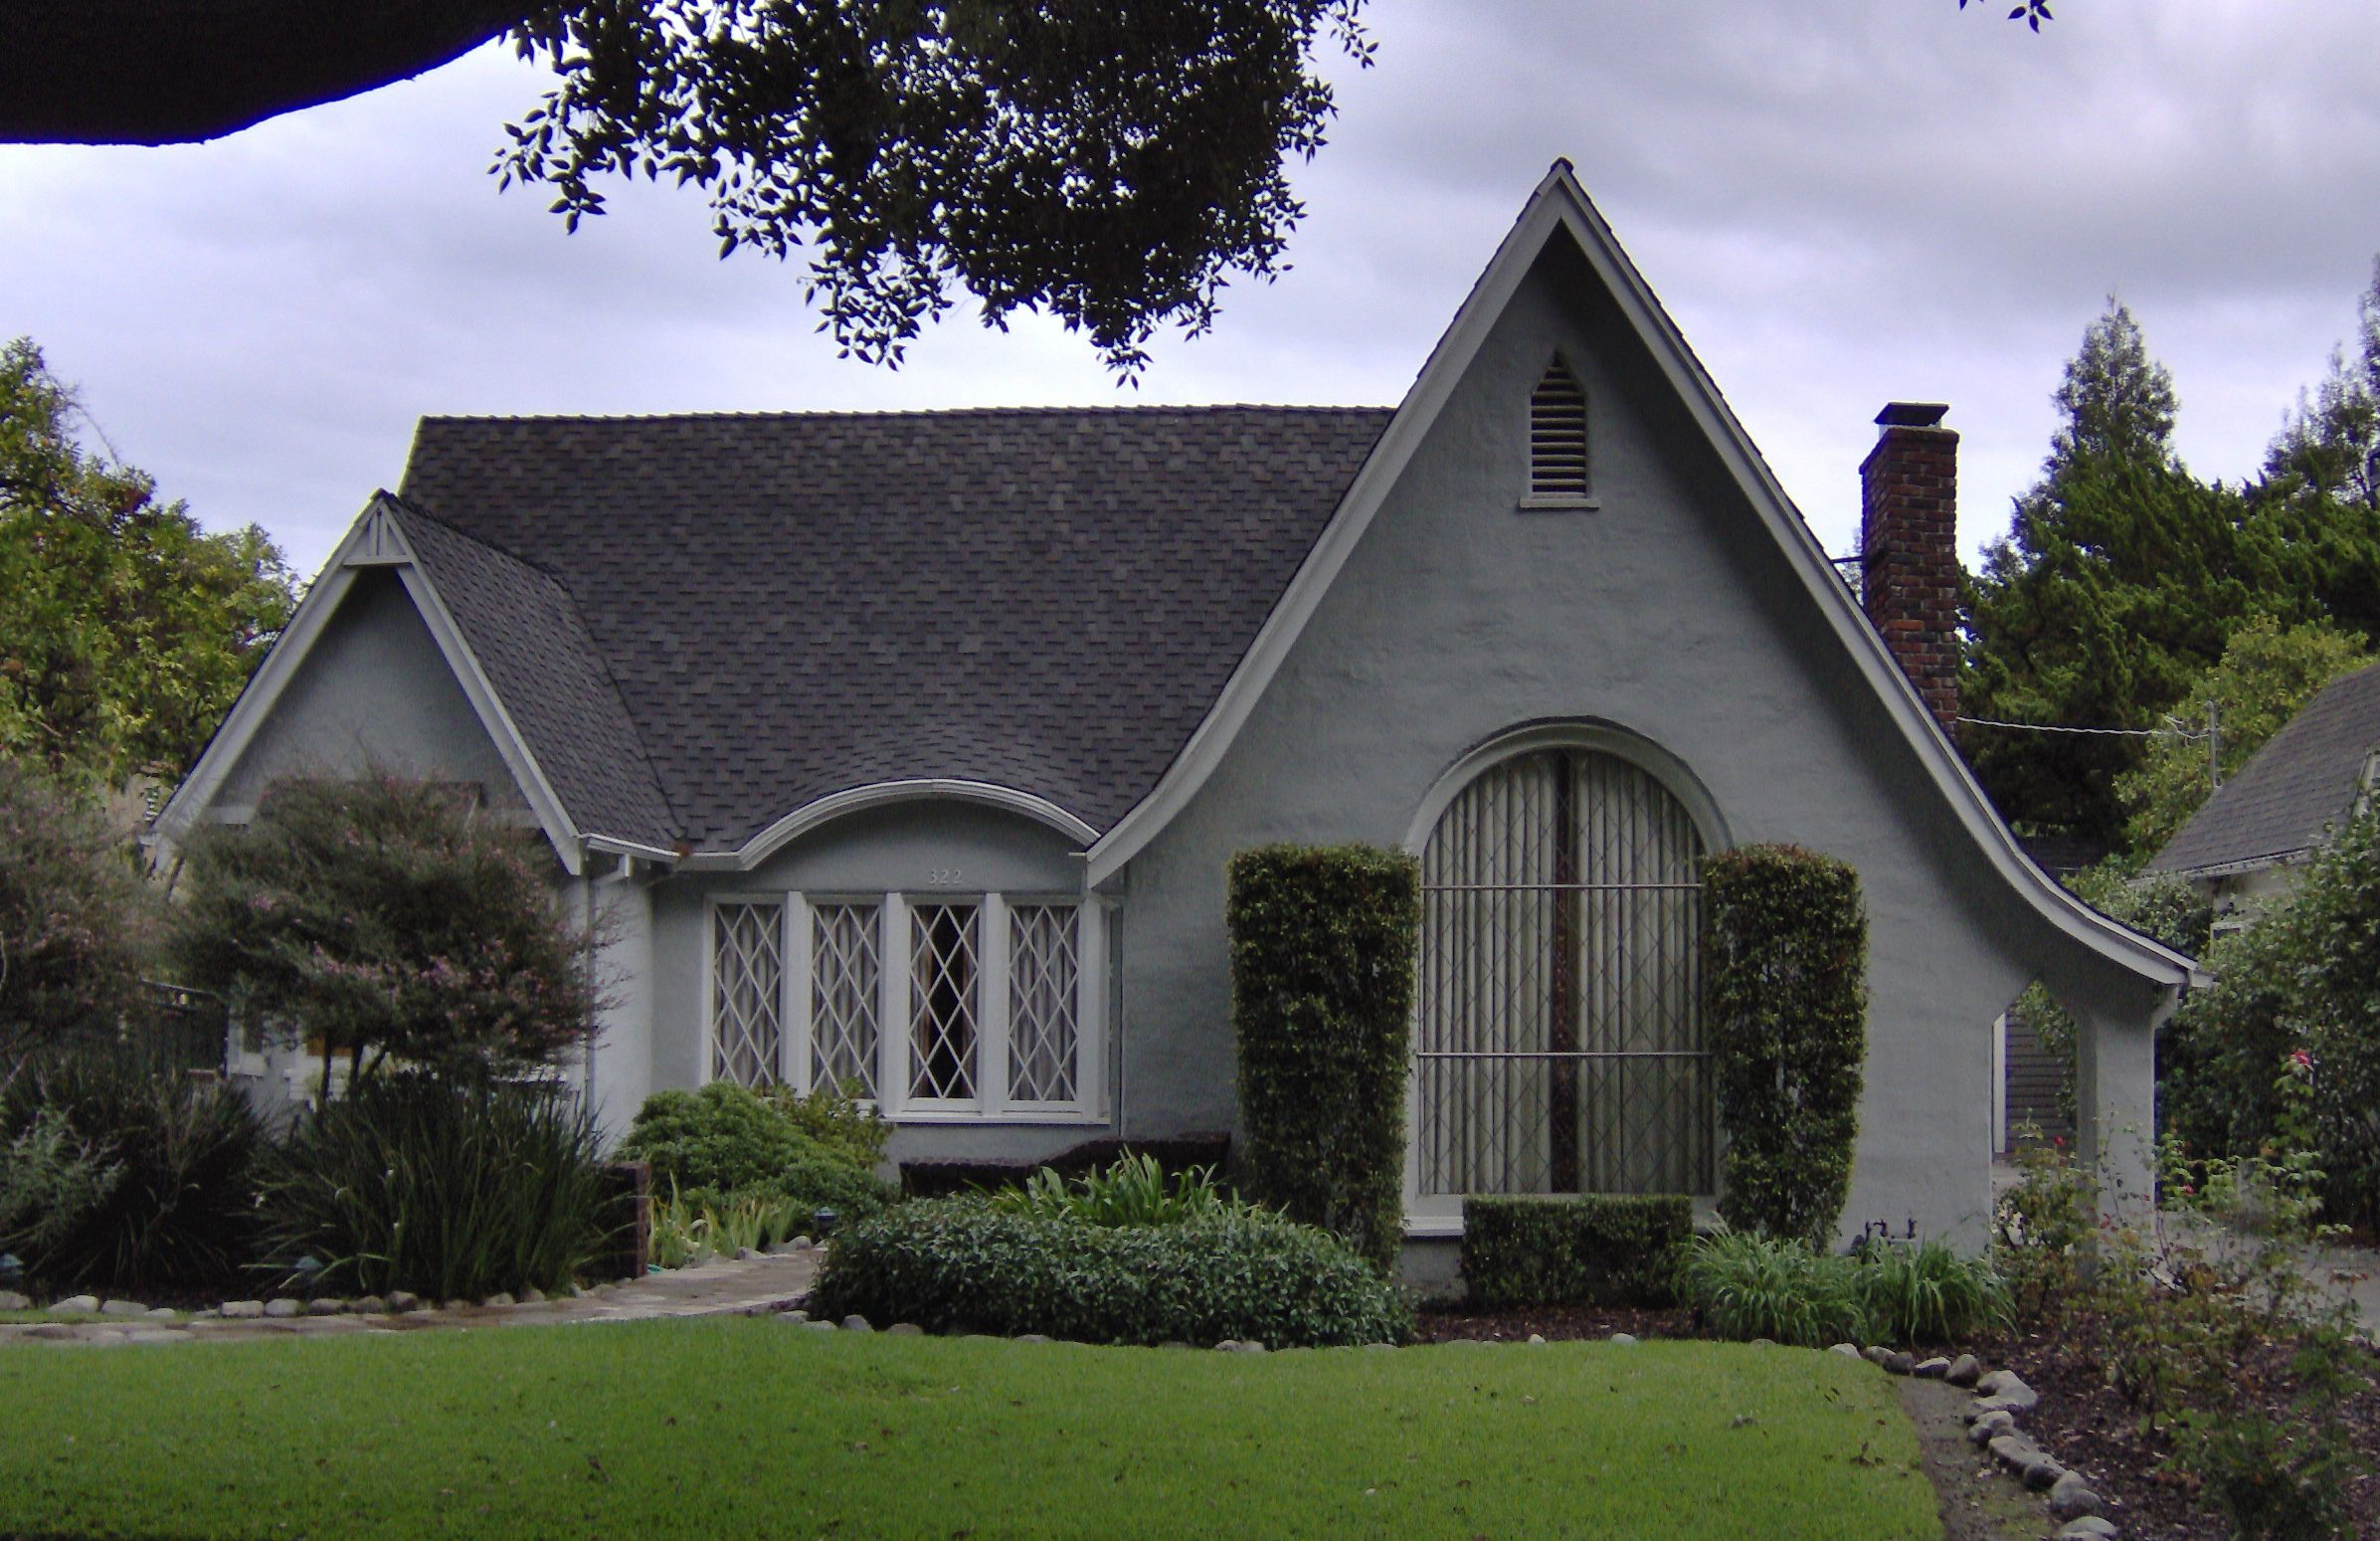 English cottage in pasadena california cottages and for English tudor cottage house plans